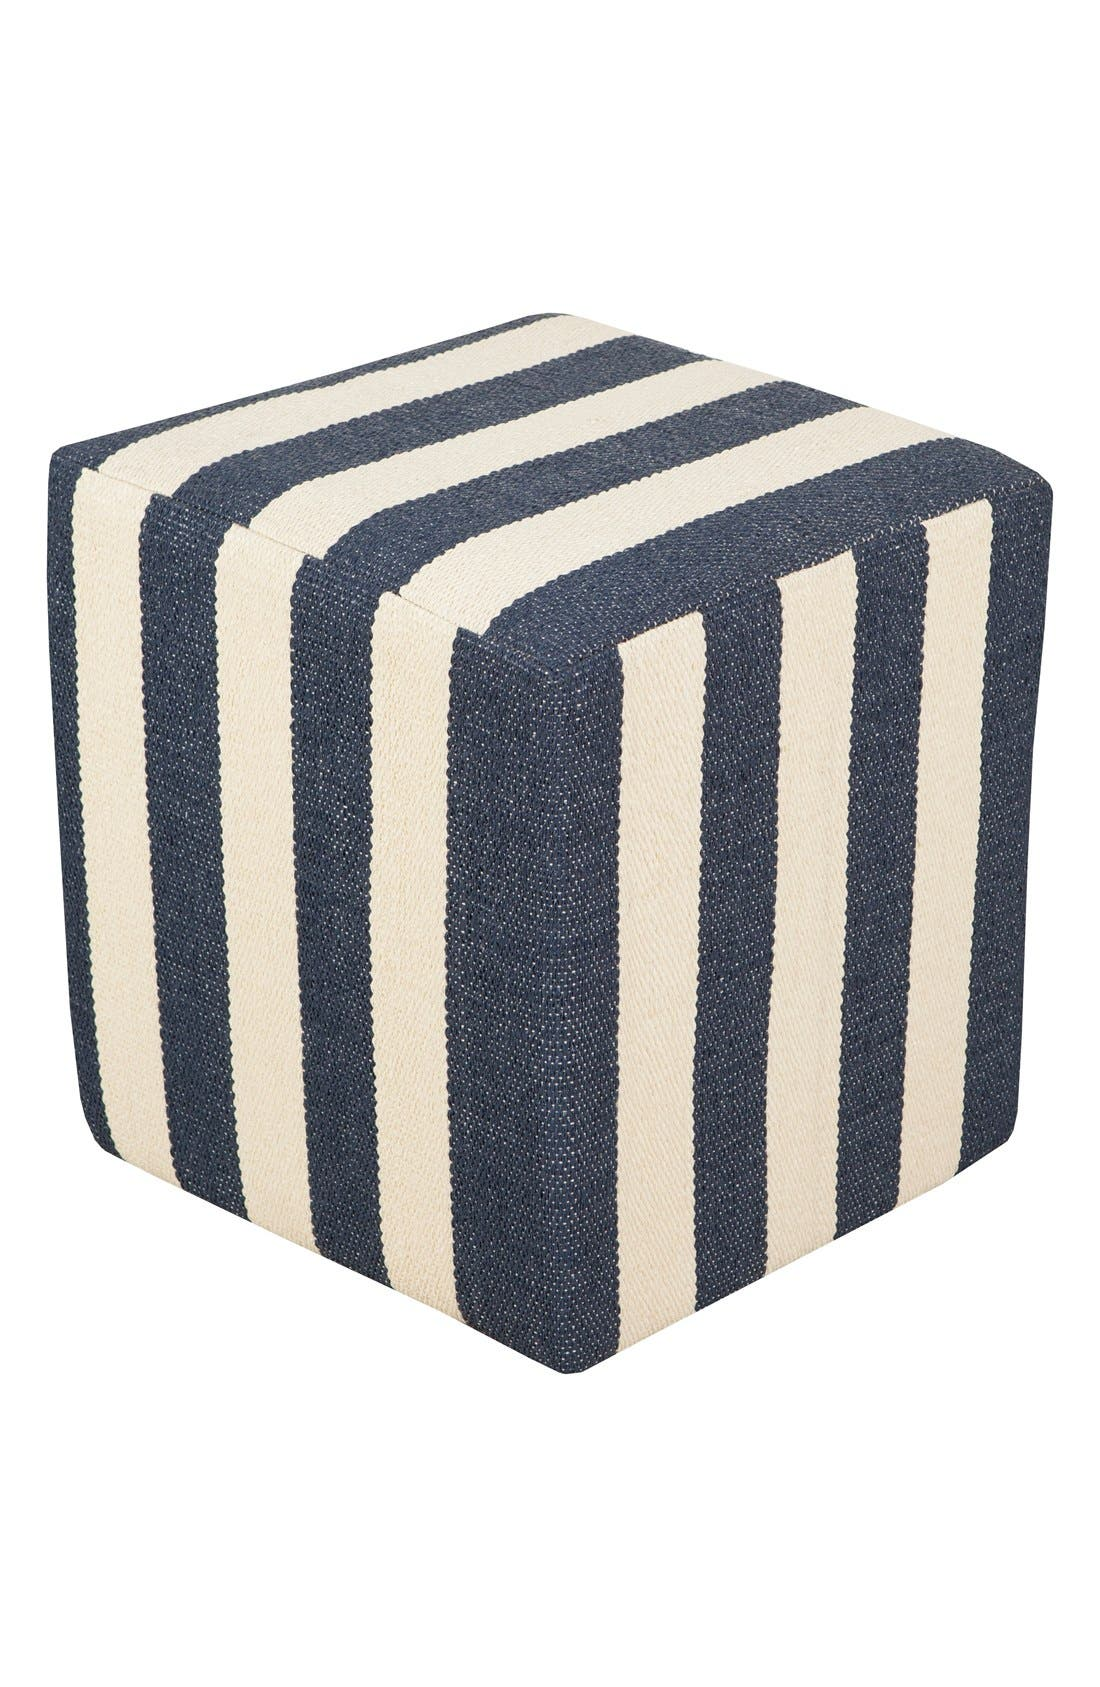 'Picnic' Pouf,                             Main thumbnail 1, color,                             Navy/ Ivory